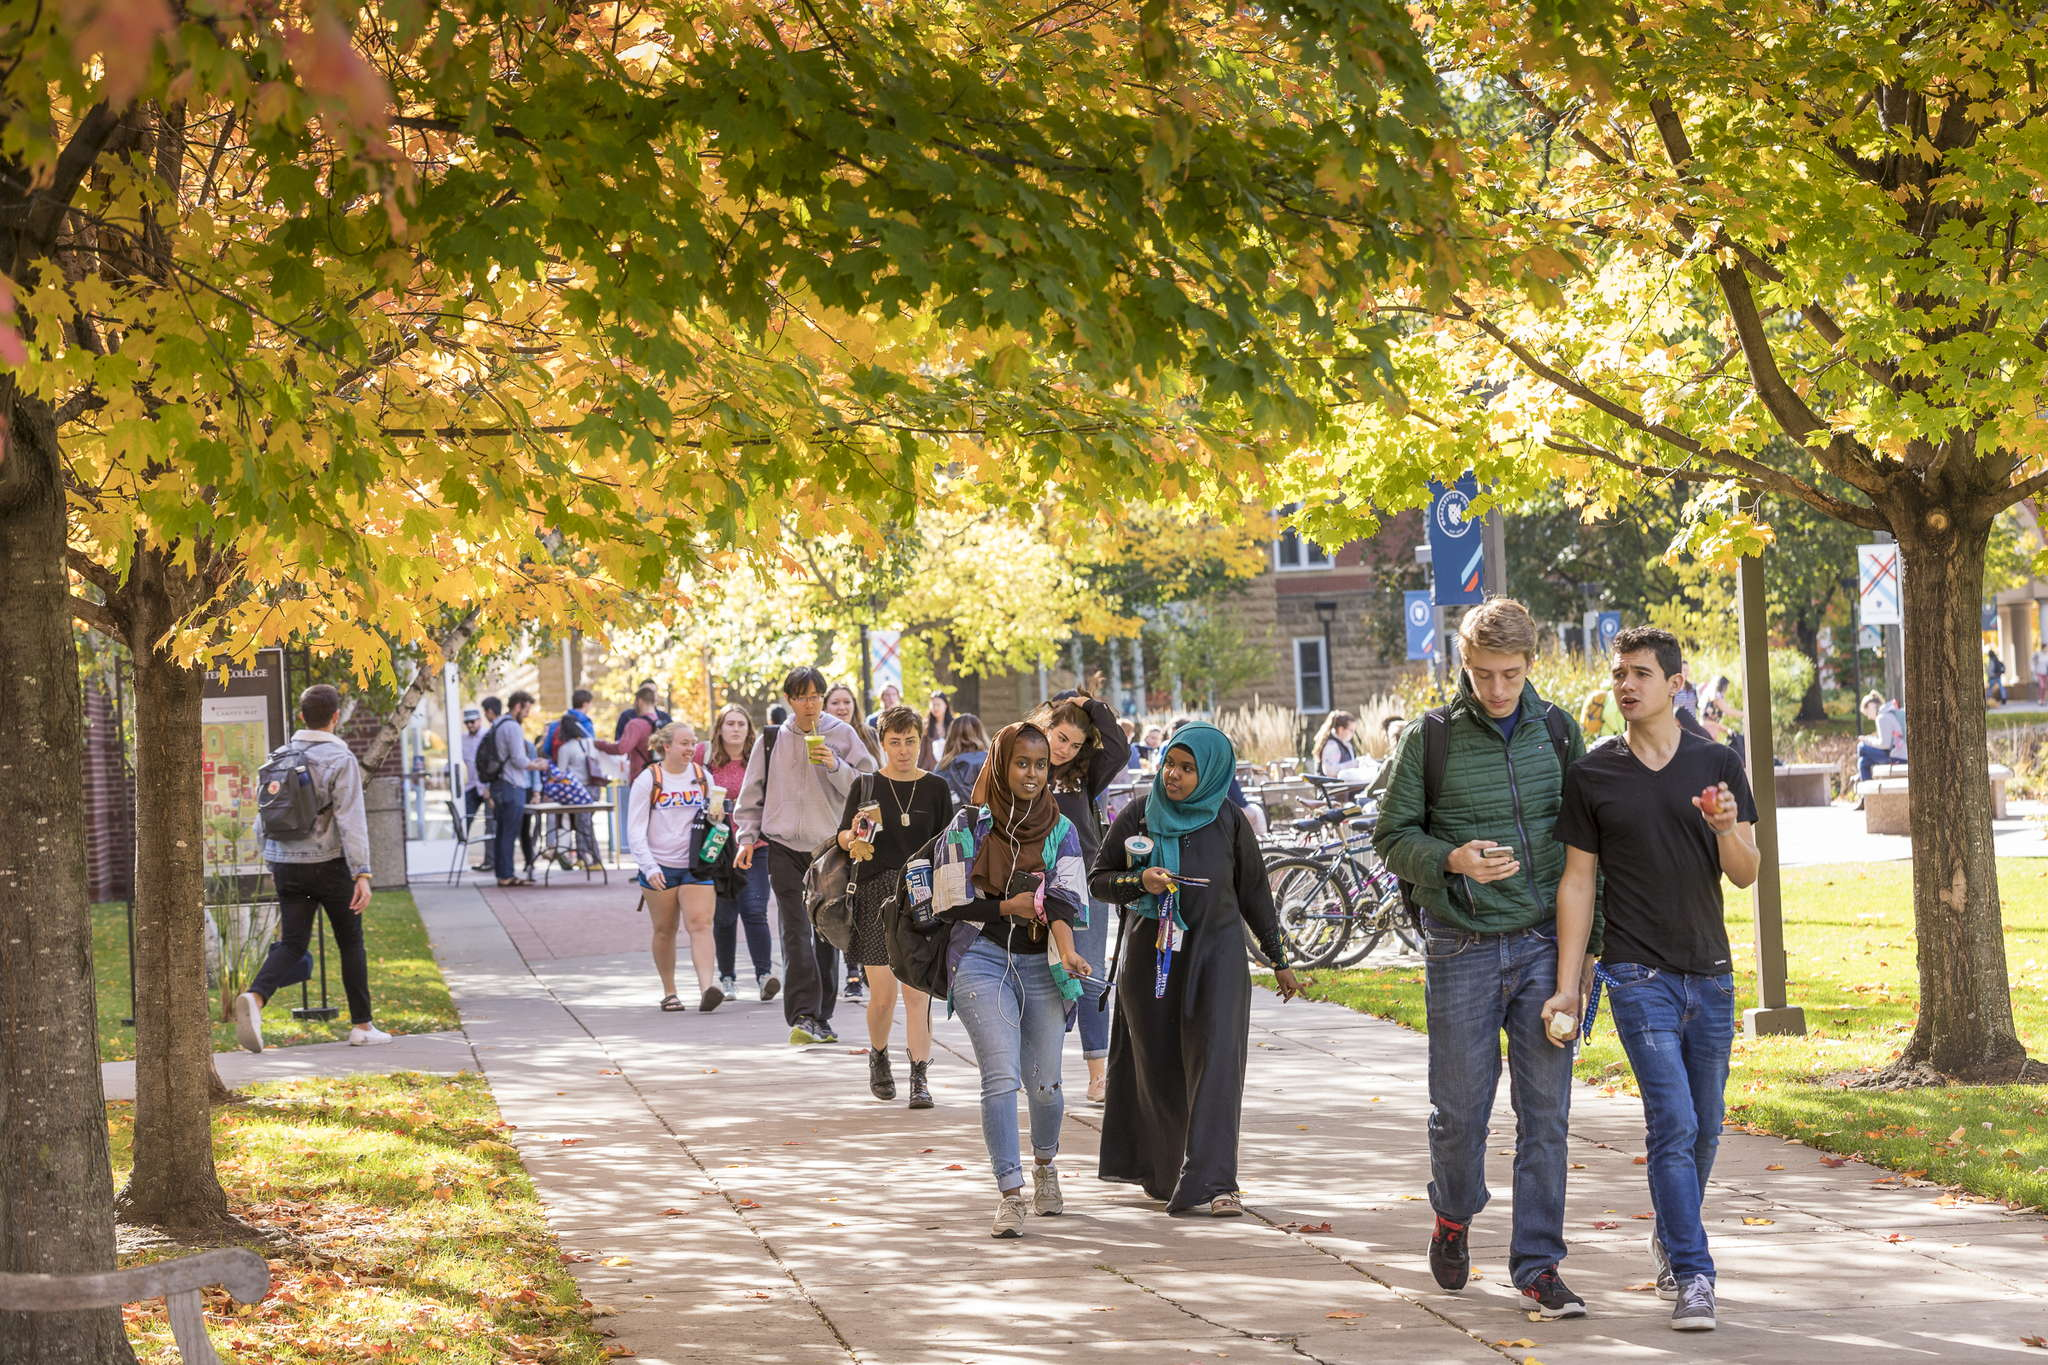 Copy_of_macalester_campus1